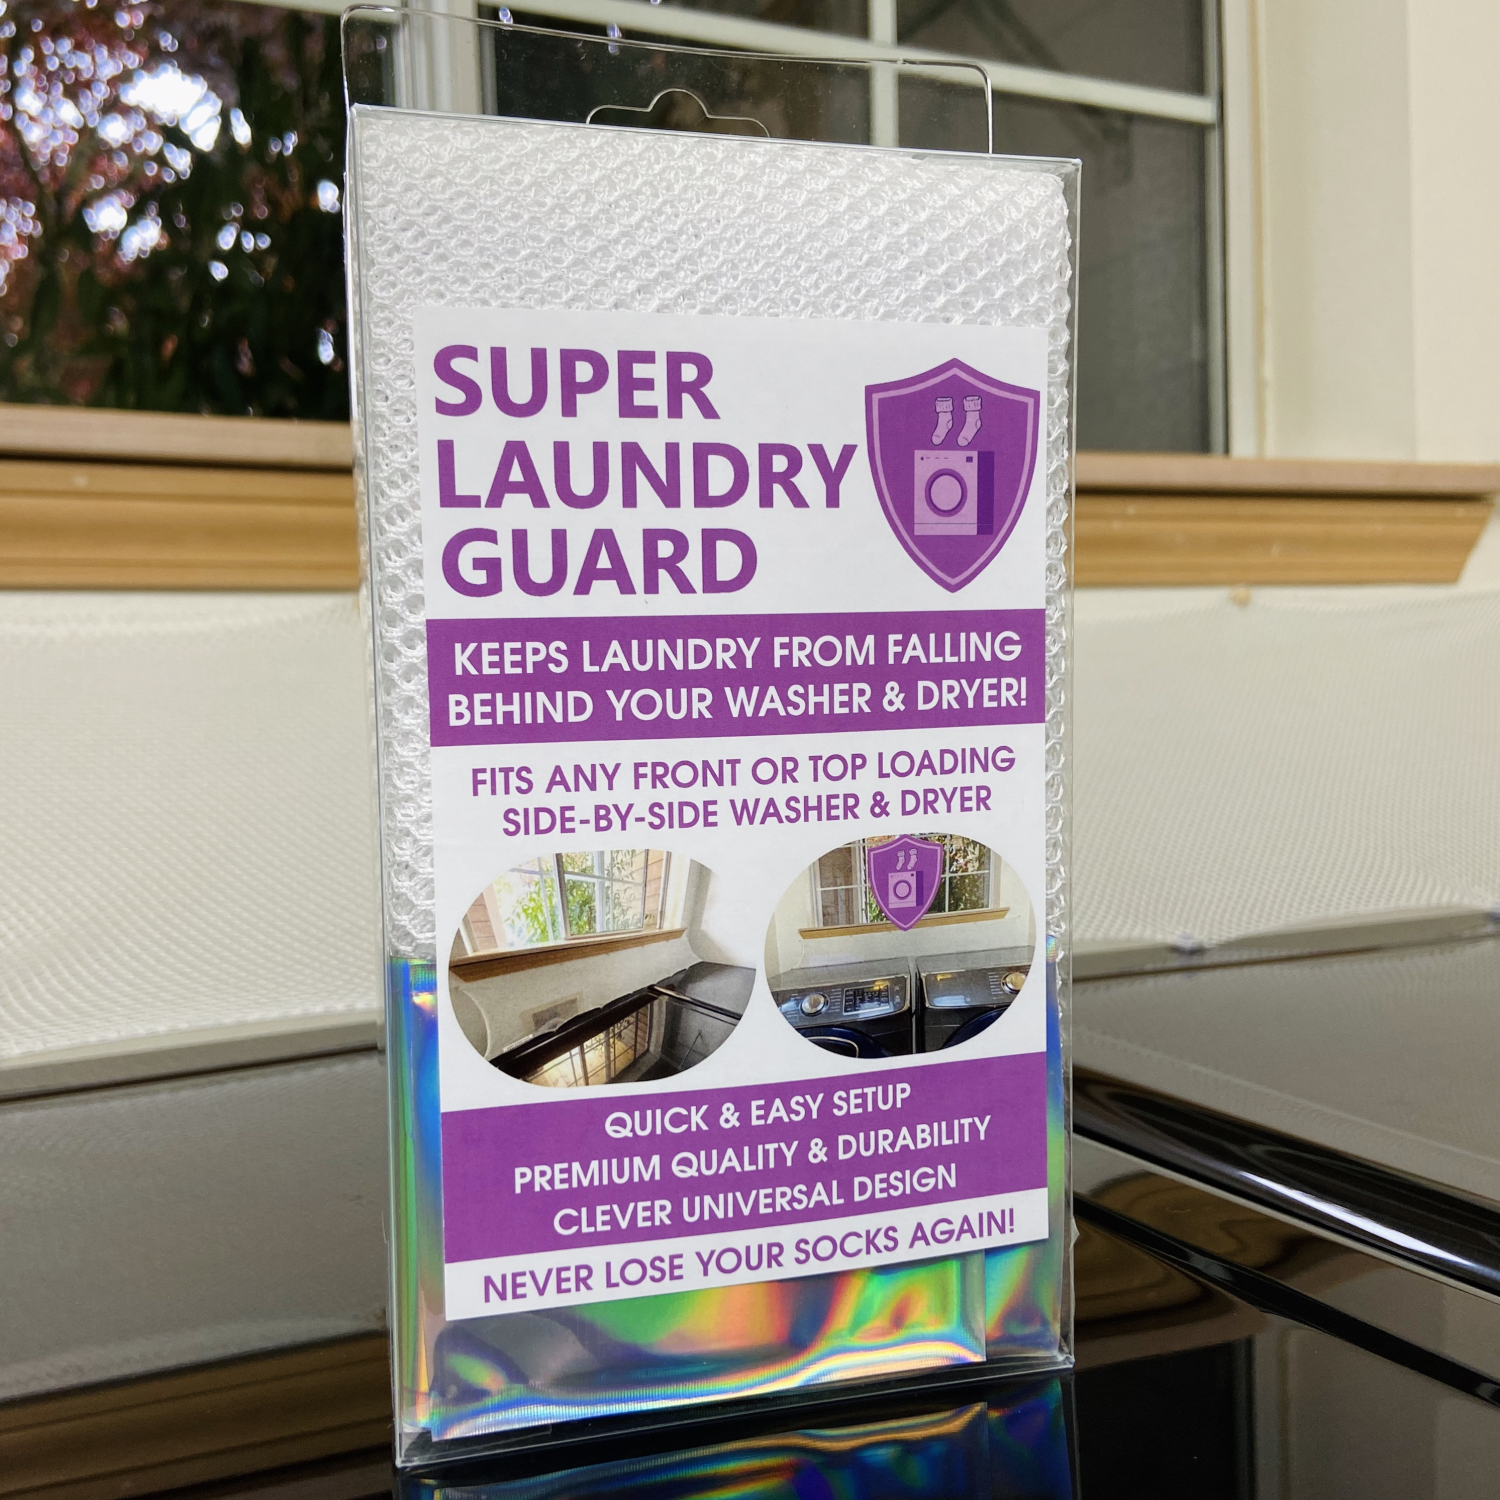 Super Laundry Guard Keeps Clothes from Falling Behind Washer Dryer Laundry Room Laundry Accessory